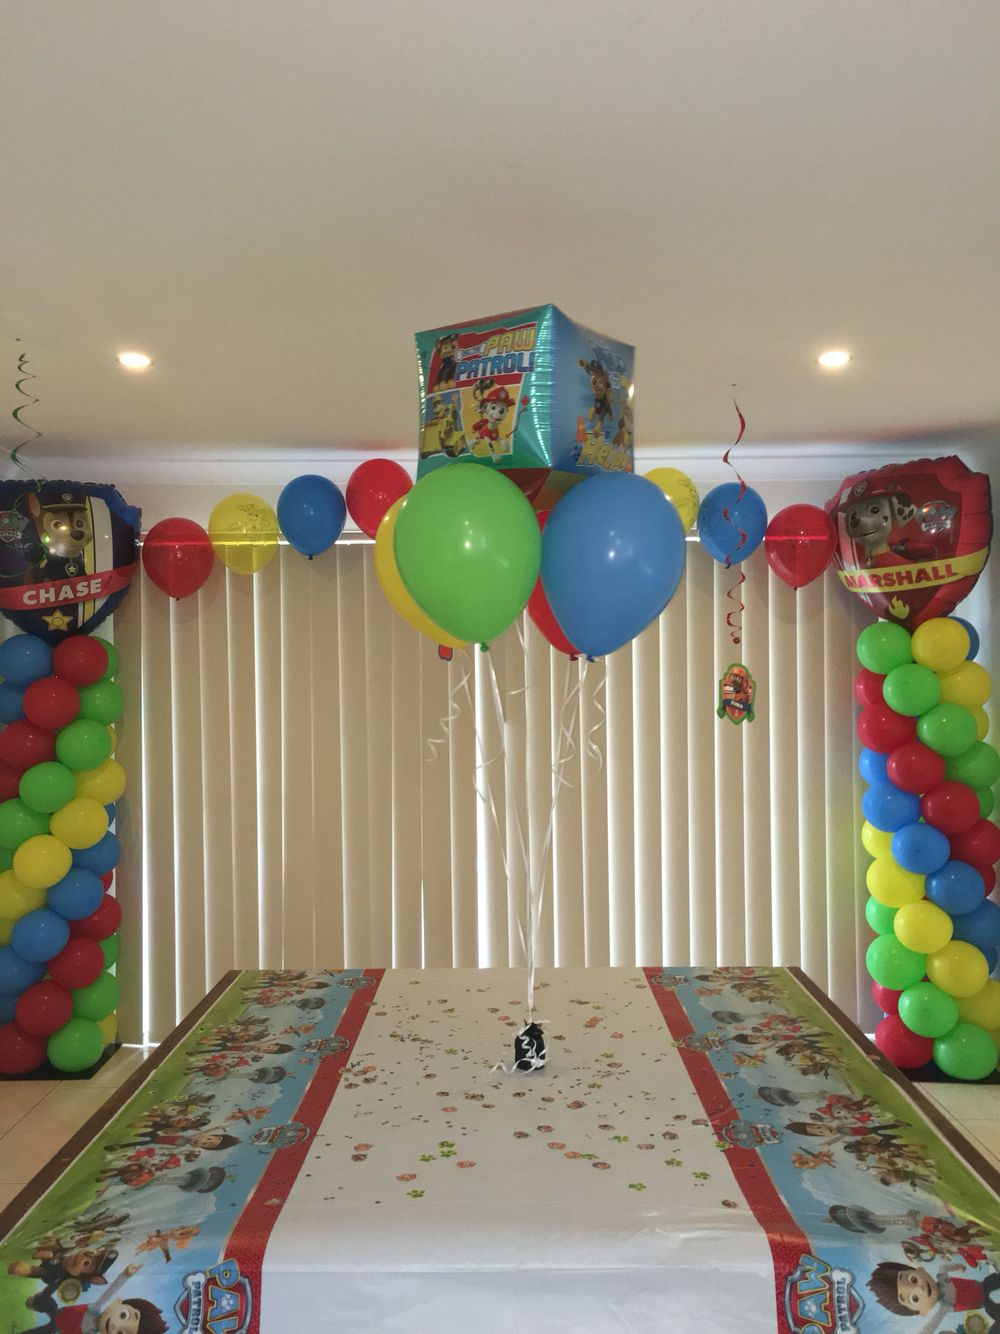 paw patrol party balloon arch we did for our sons 5th birthday birthday party ideas for kids. Black Bedroom Furniture Sets. Home Design Ideas